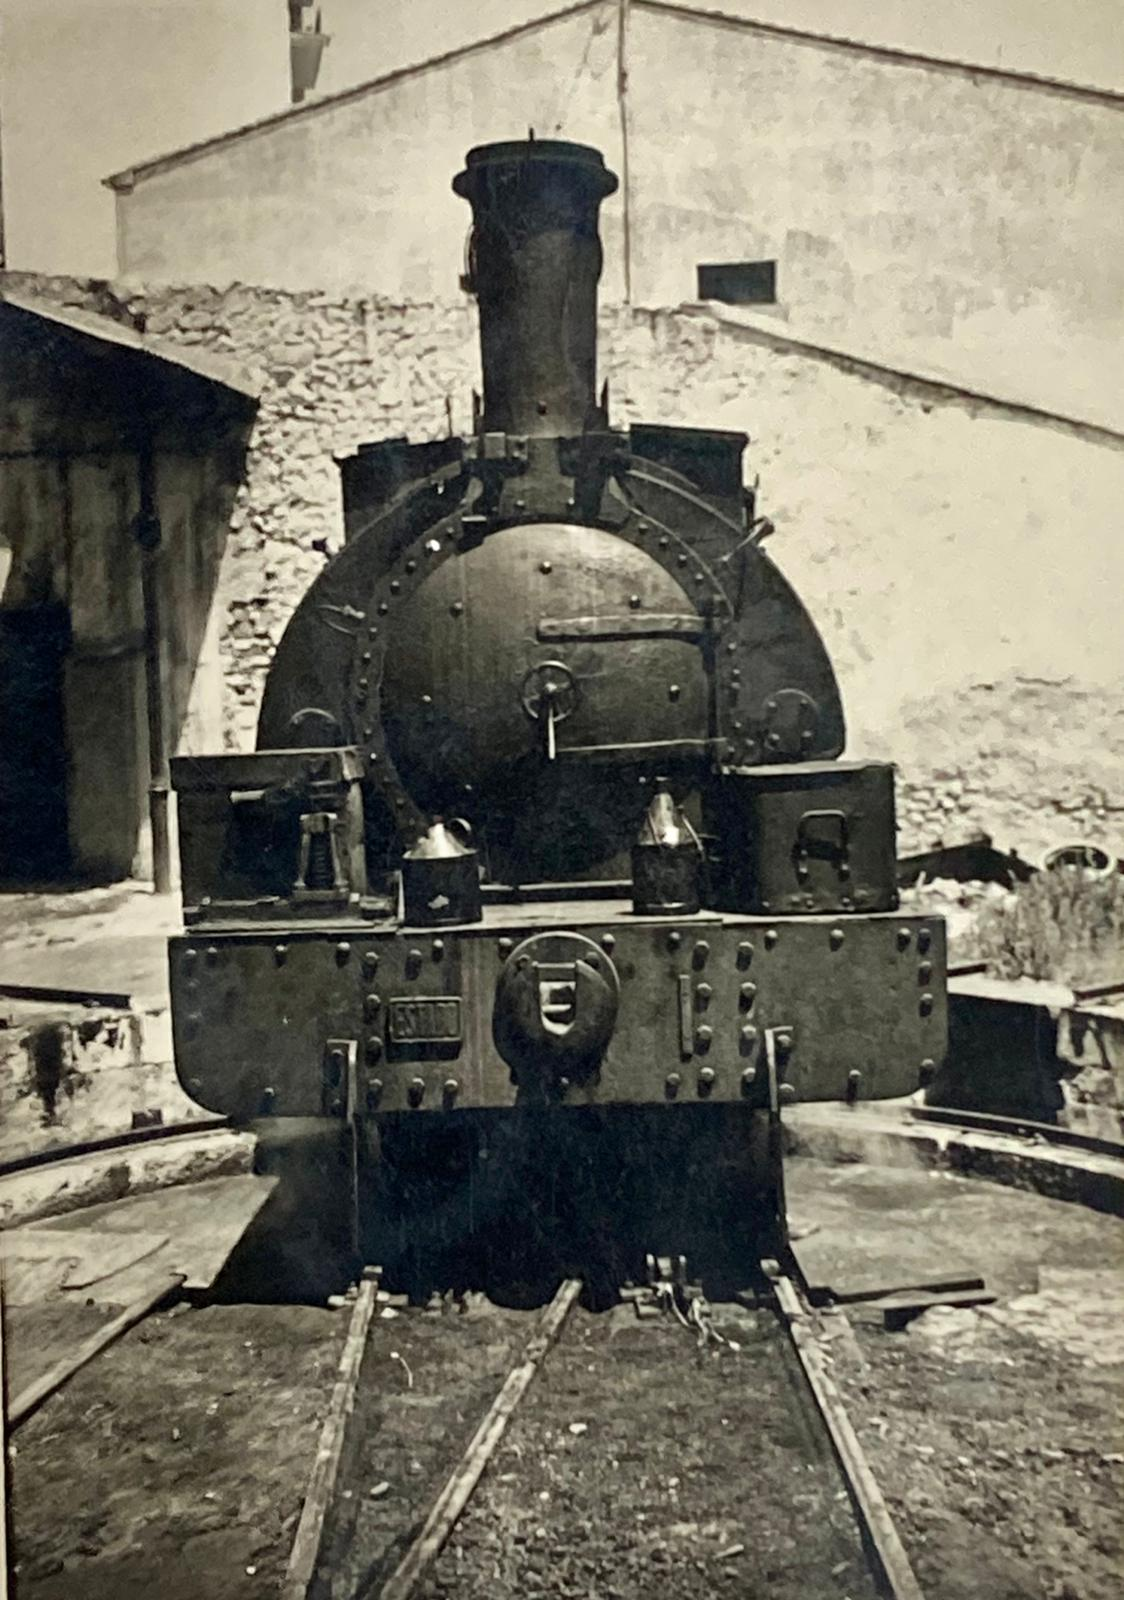 Photograph of the front of the locomotive from the archives of Vicent Ferrer y Hermenegildo